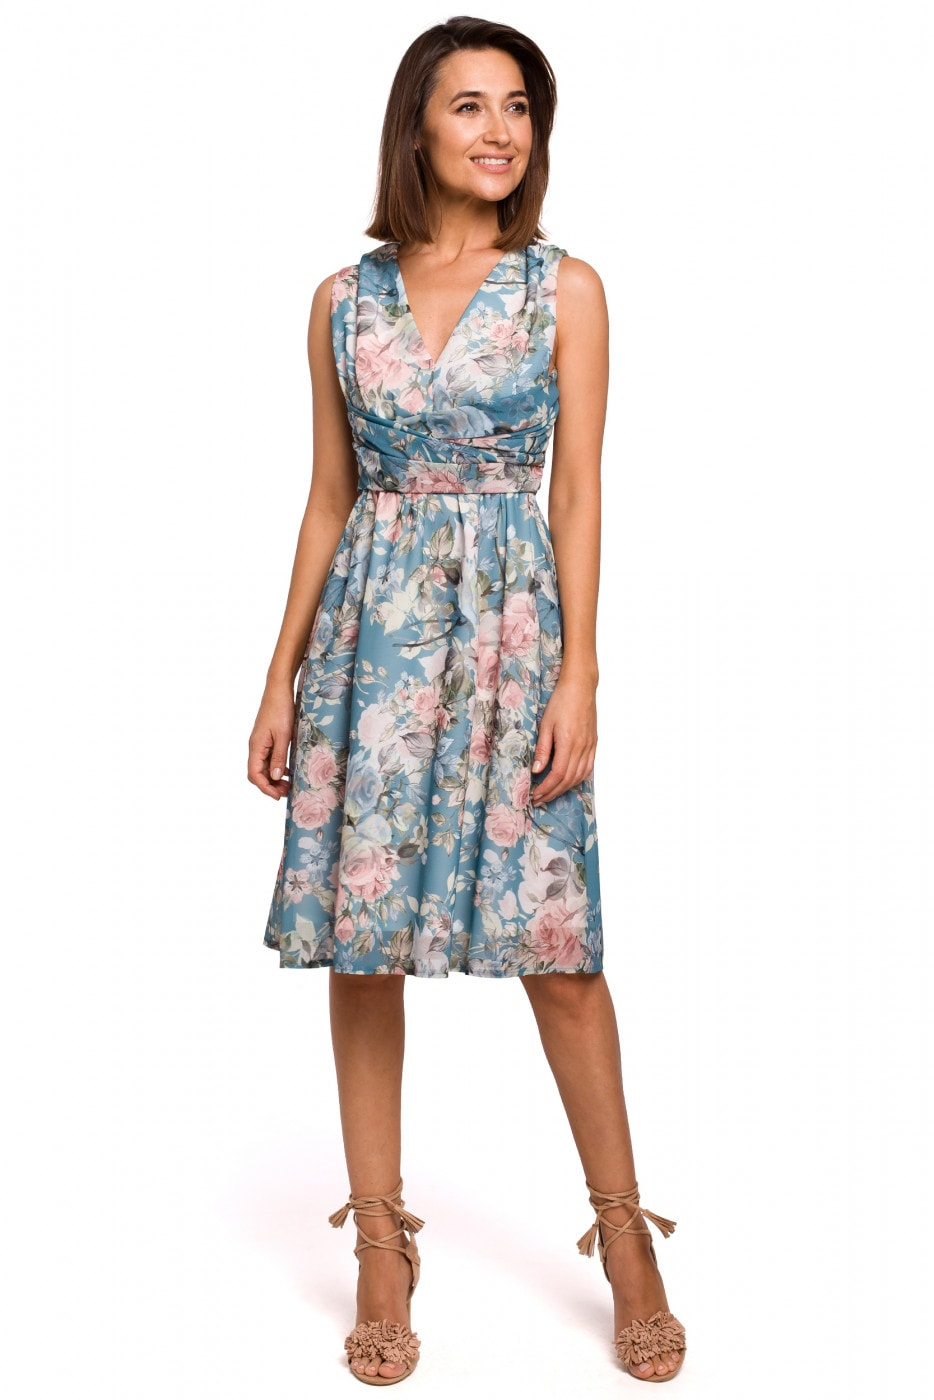 Stylove Woman's Dress S225